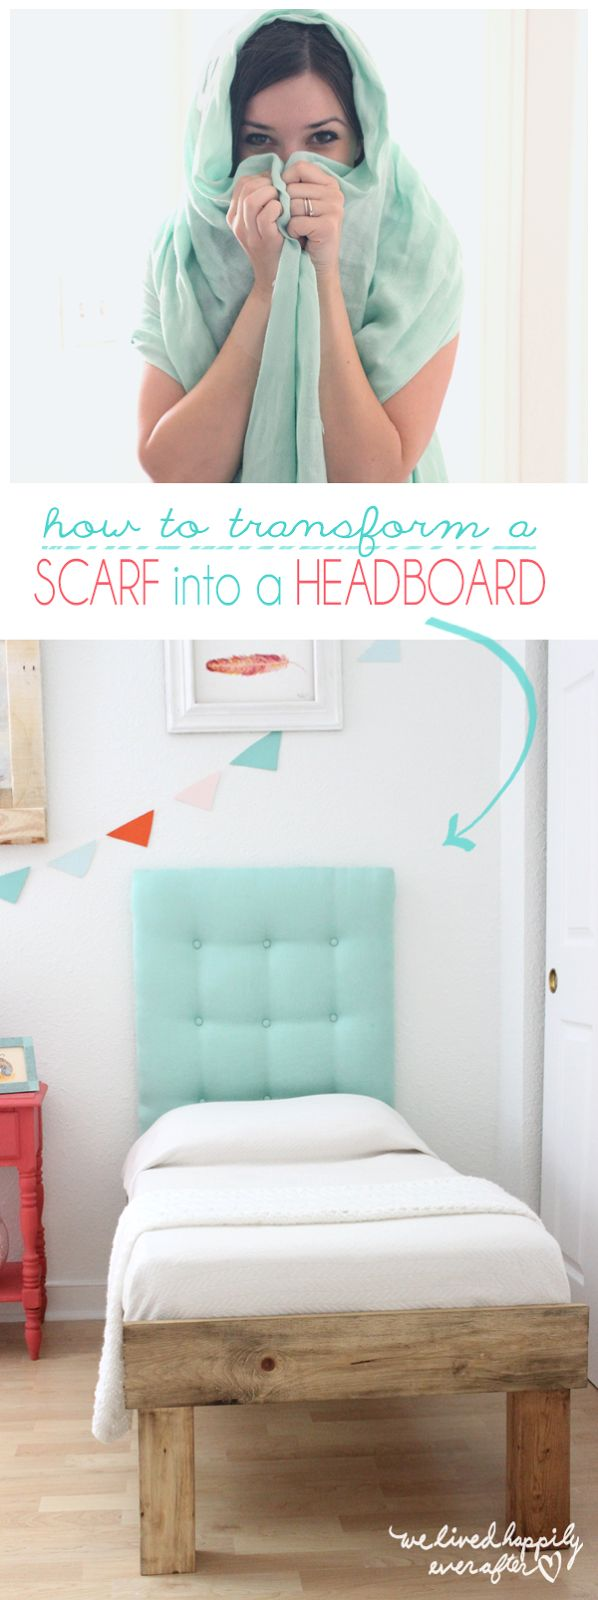 How to Transform a SCARF into a HEADBOARD